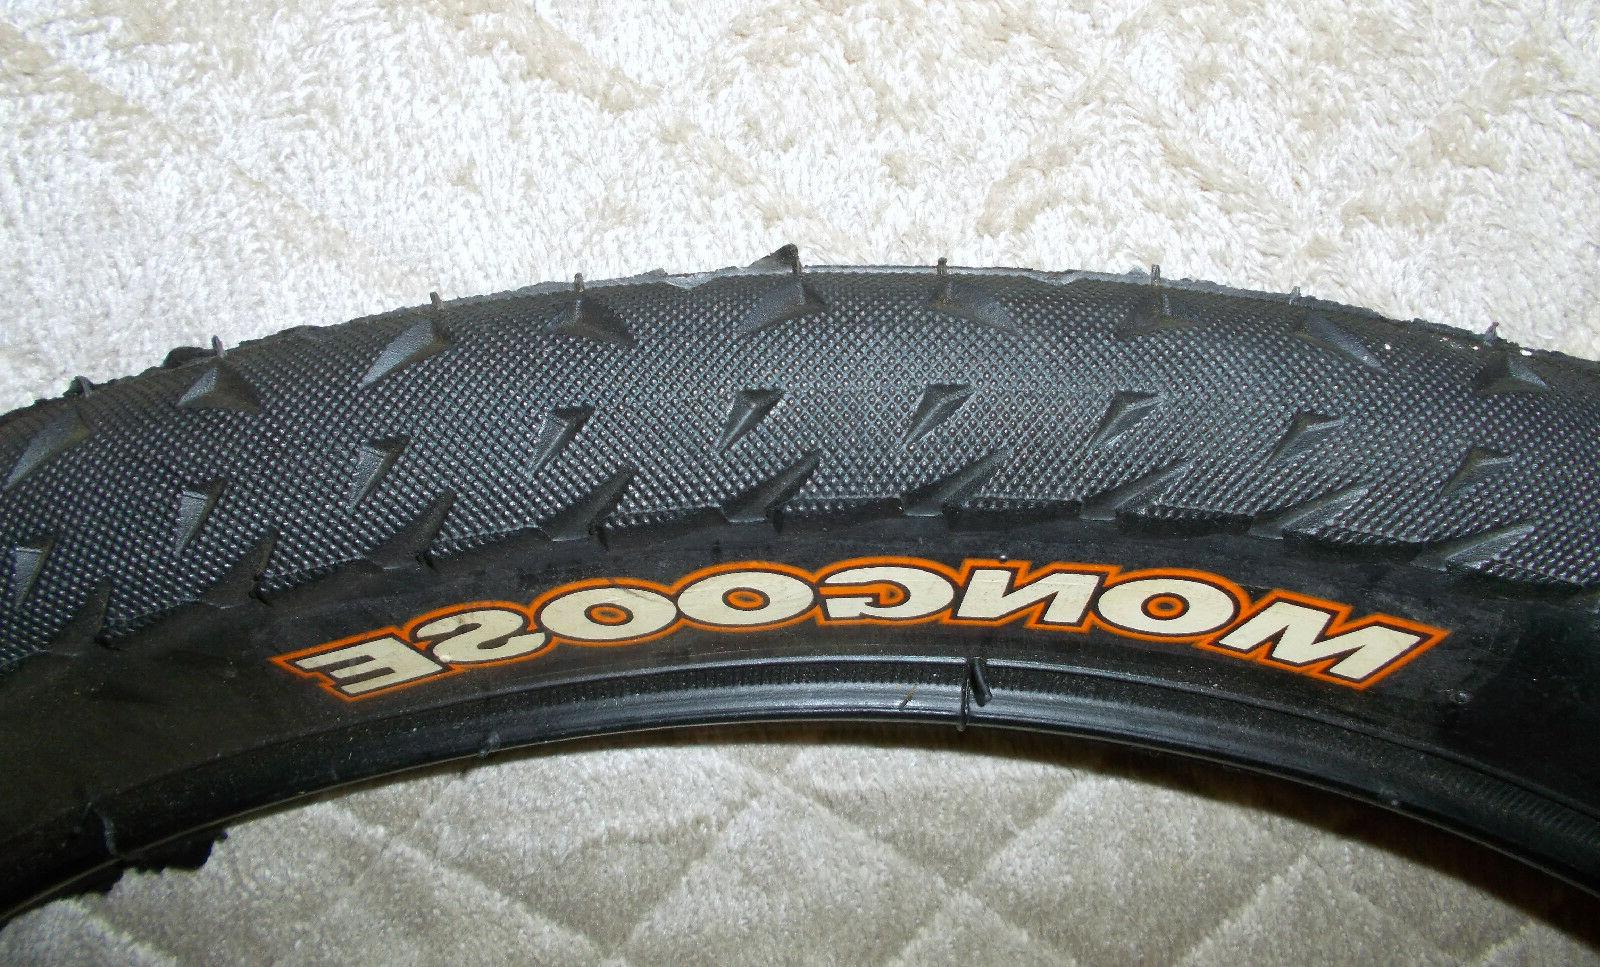 Mongoose Bicycle Tire 20 x 2.0 Smooth Tread Black White Oran